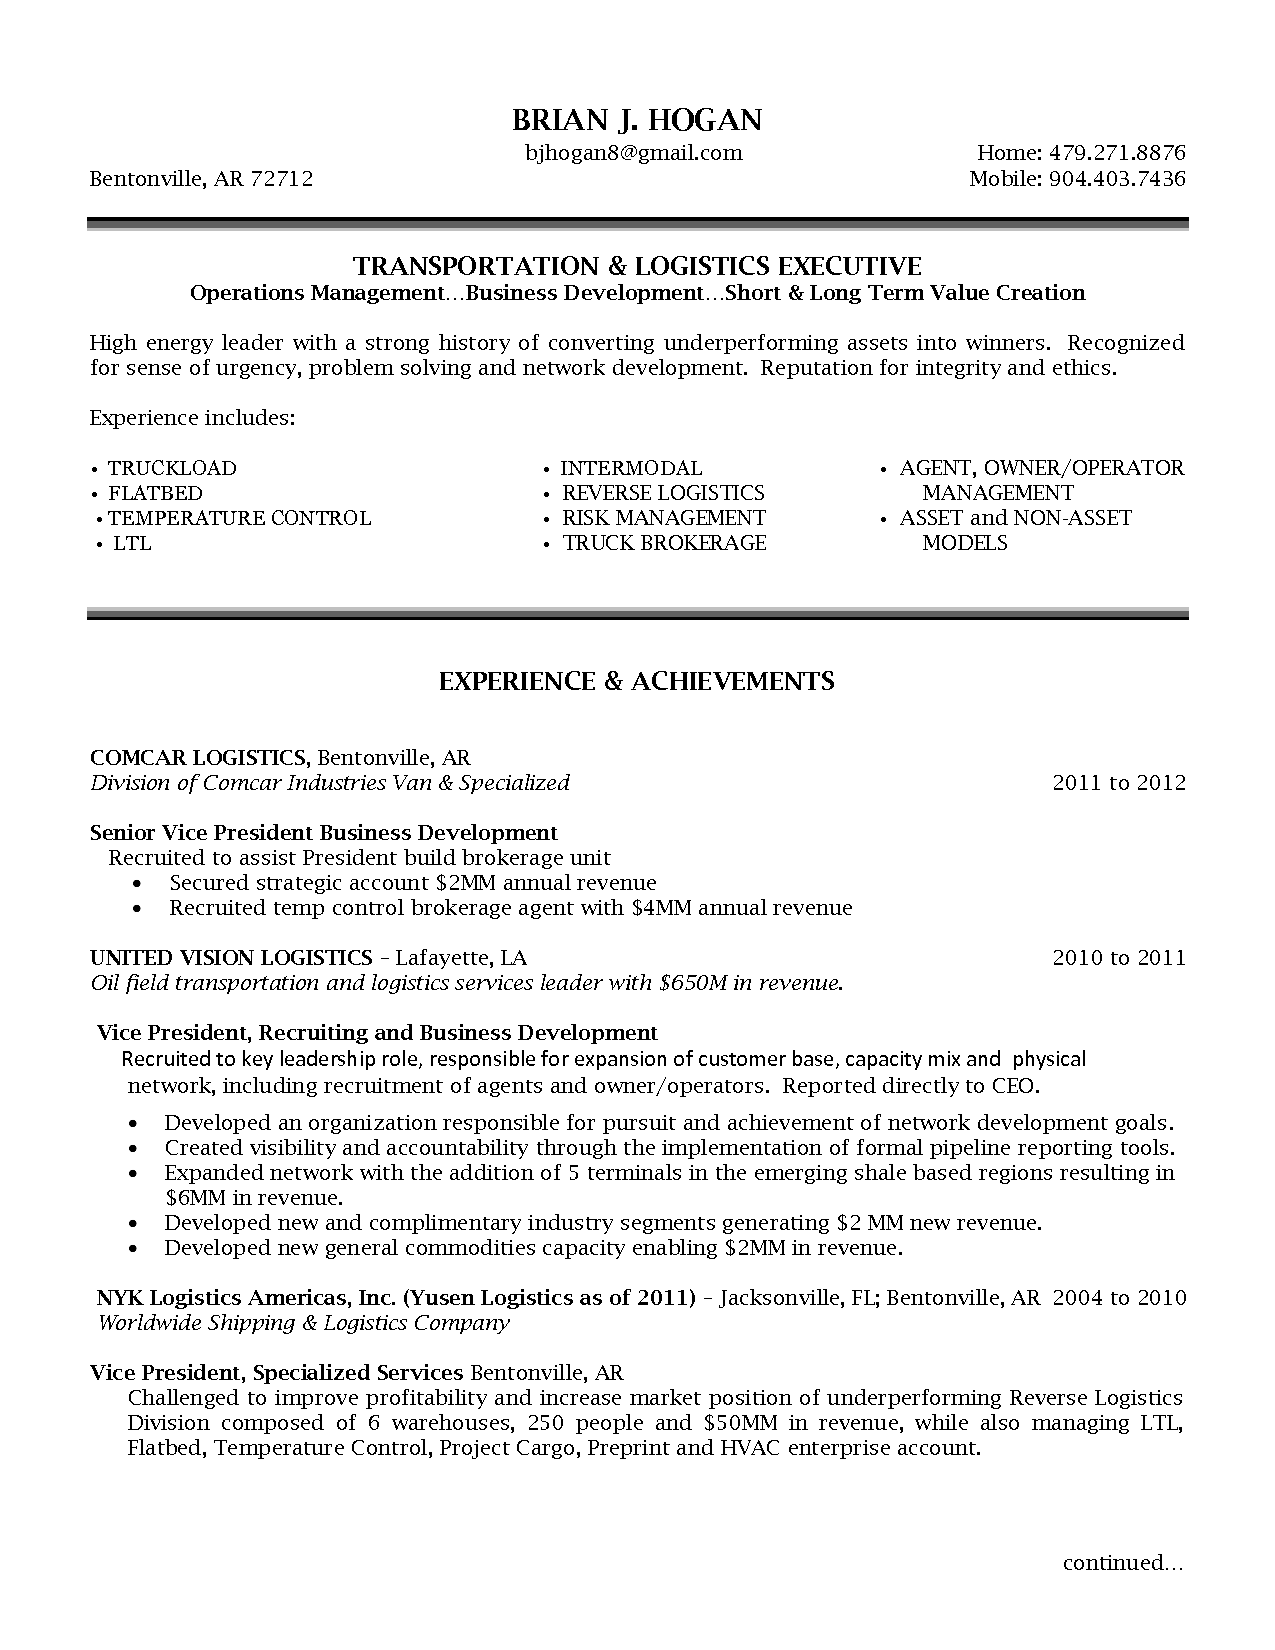 Office Manager Resume Objective Senior Logistic Management Resume  Vp Director Operations